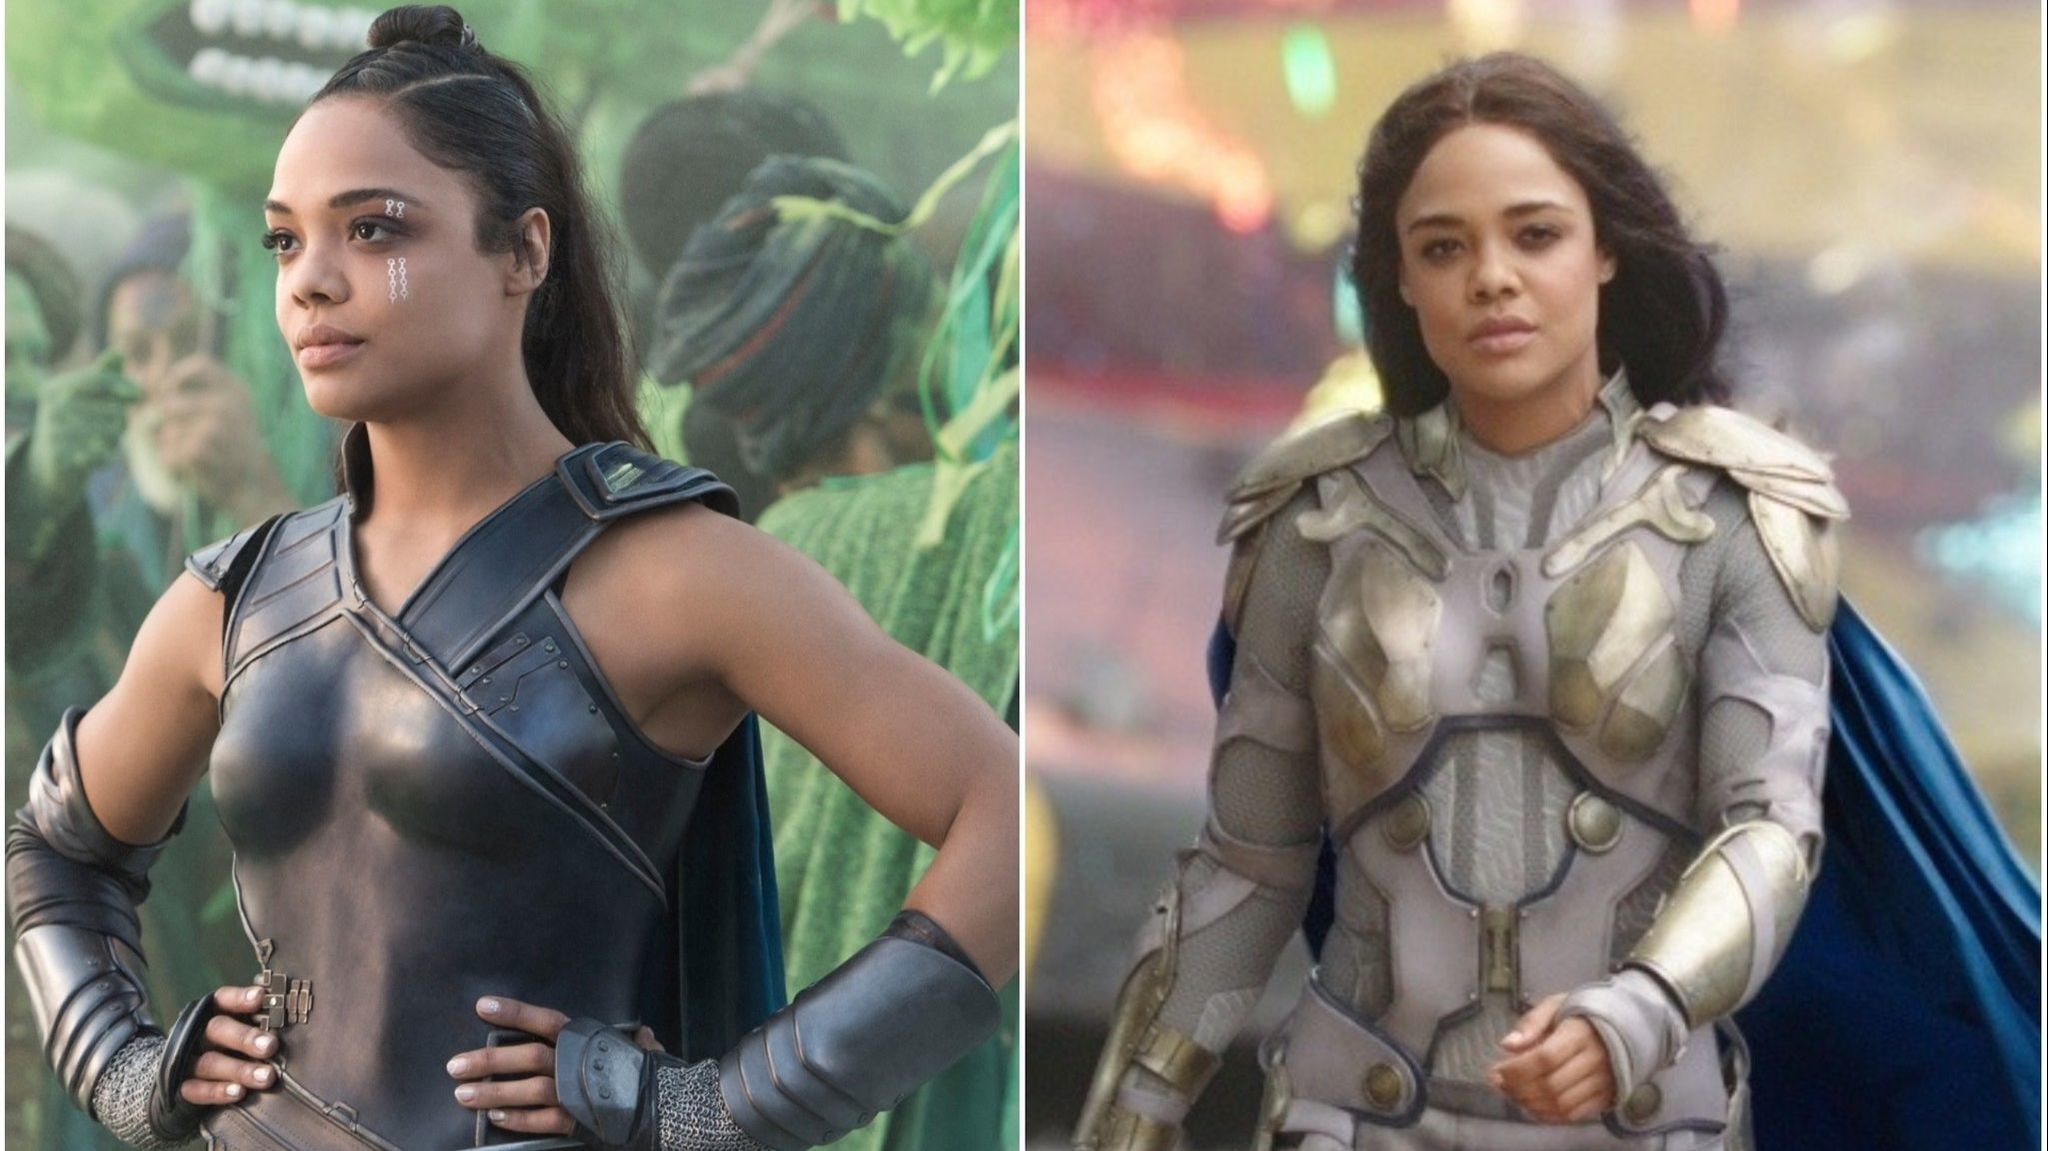 Carol Danvers might team up with Valkyrie: Captain Marvel directors wish for the same